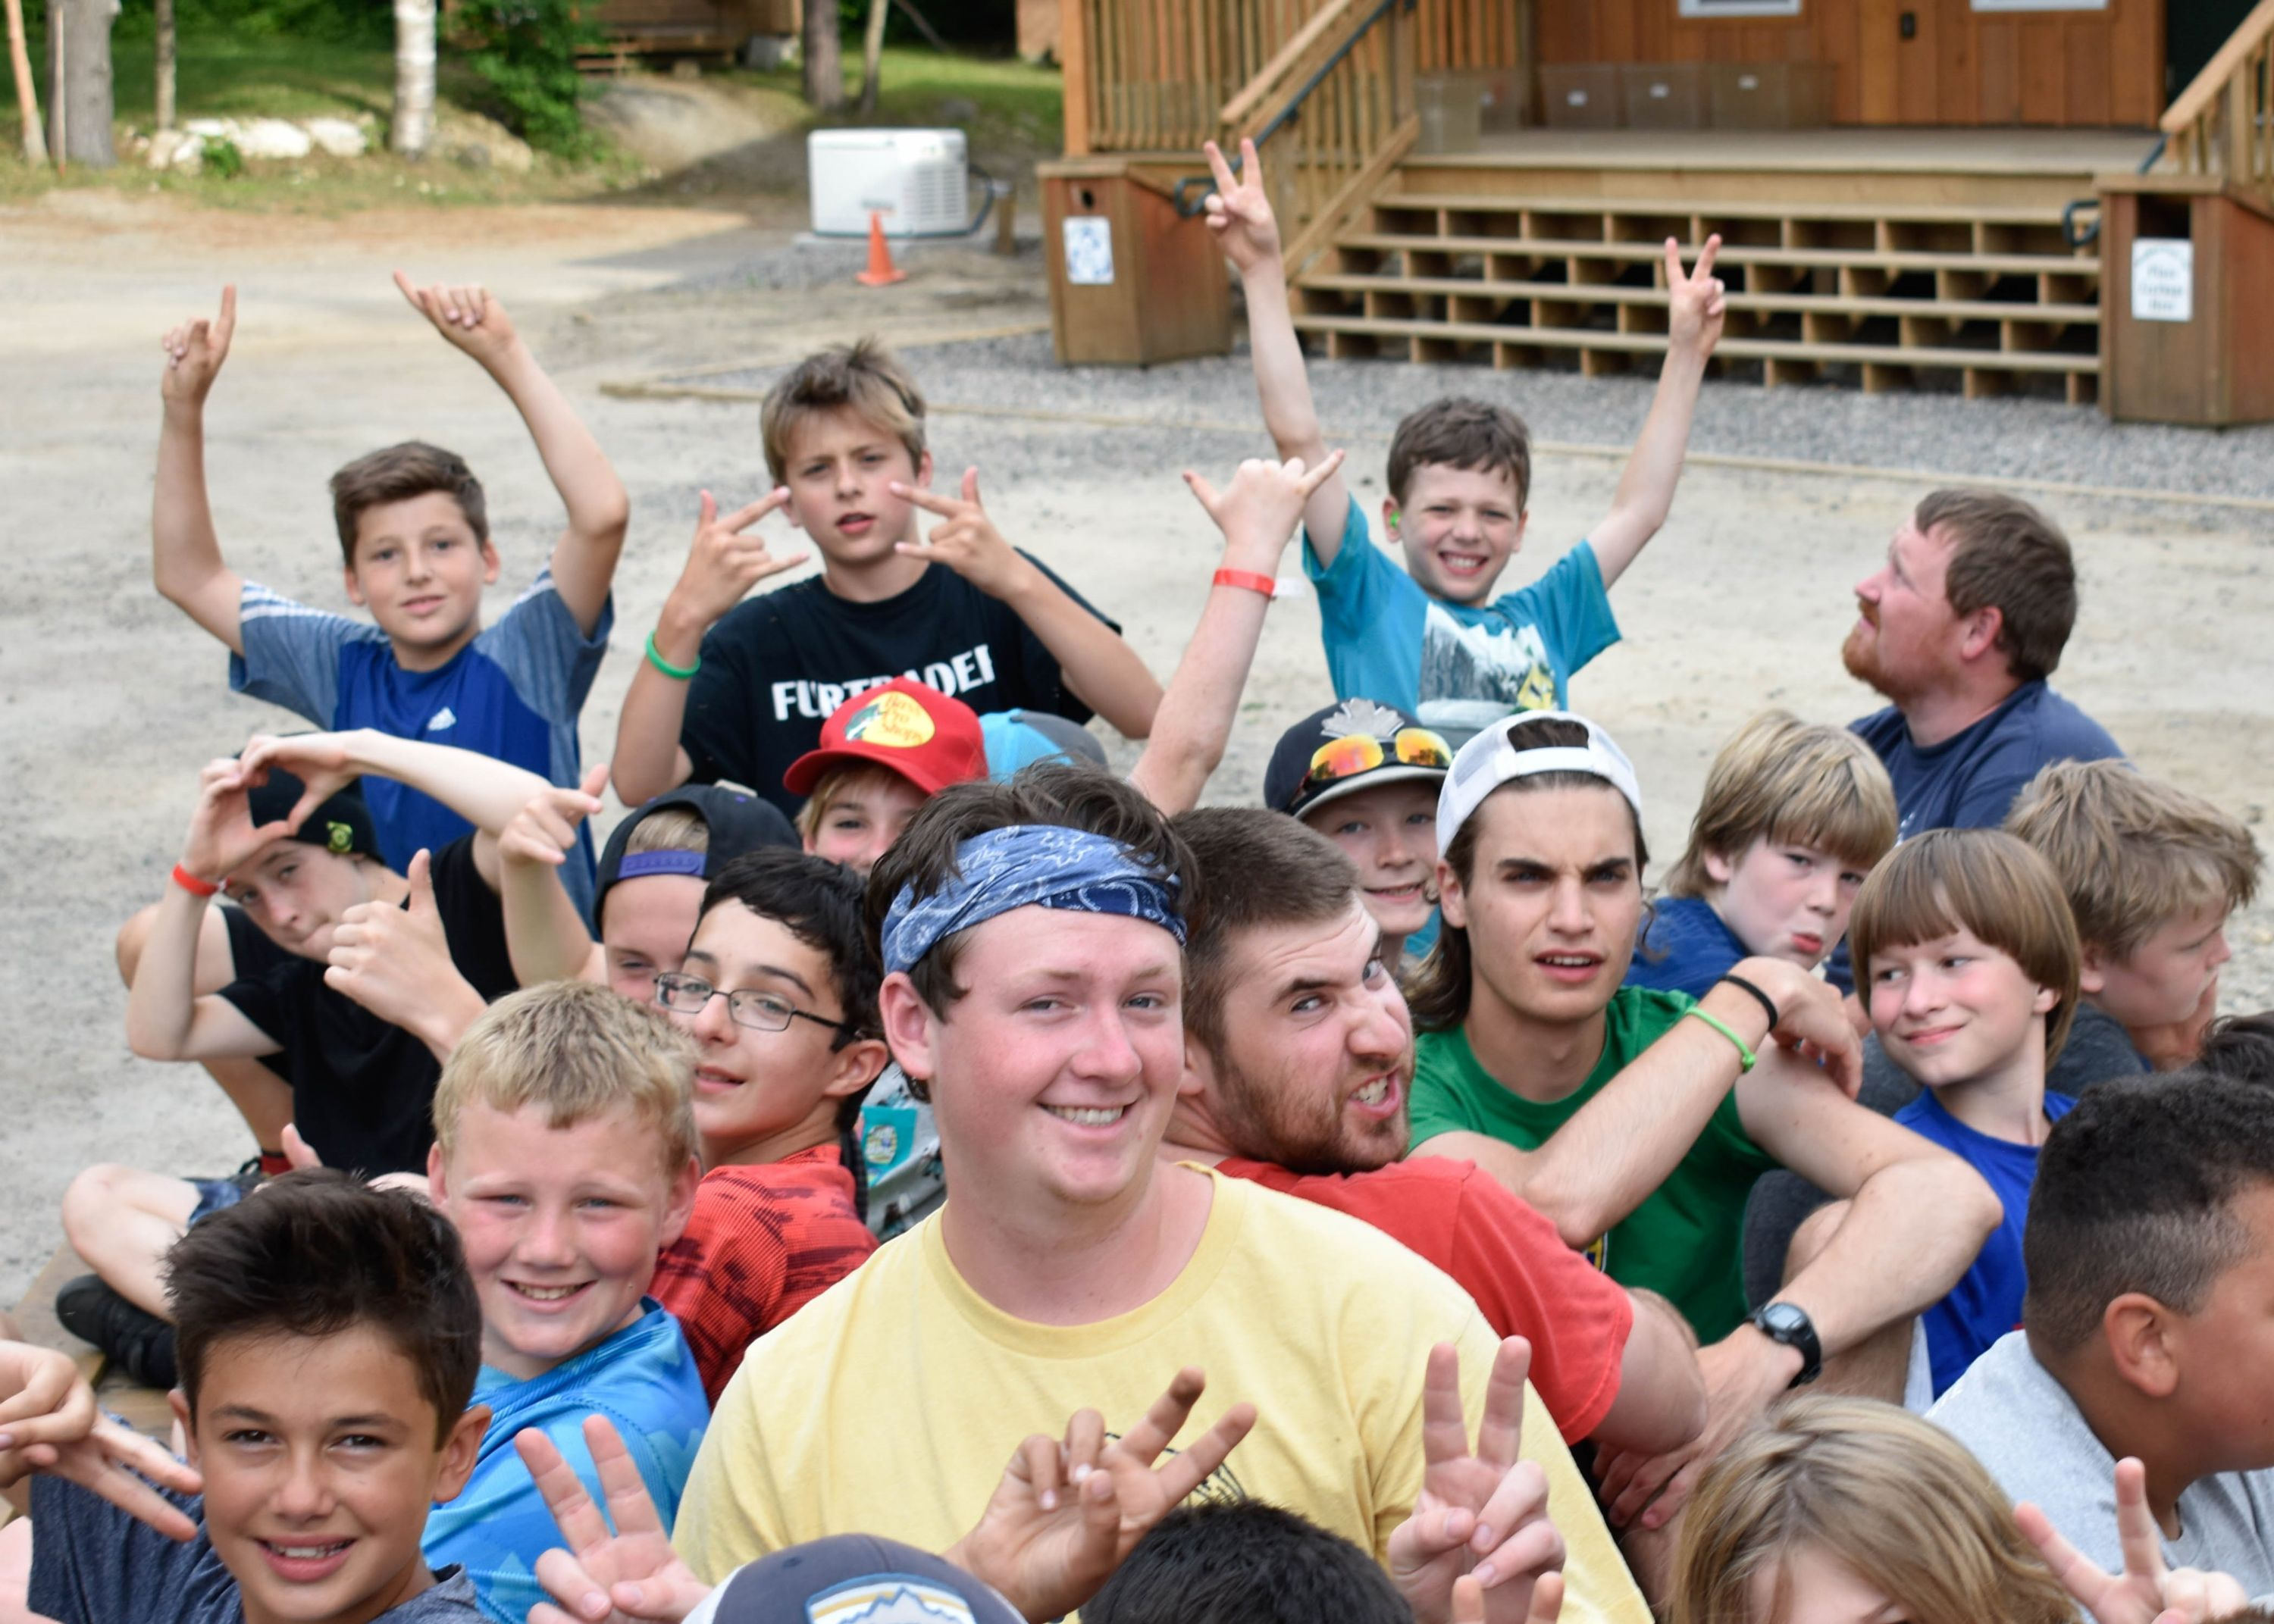 Guy campers having fun at christiana adventure summer camp in haliburton, ontario